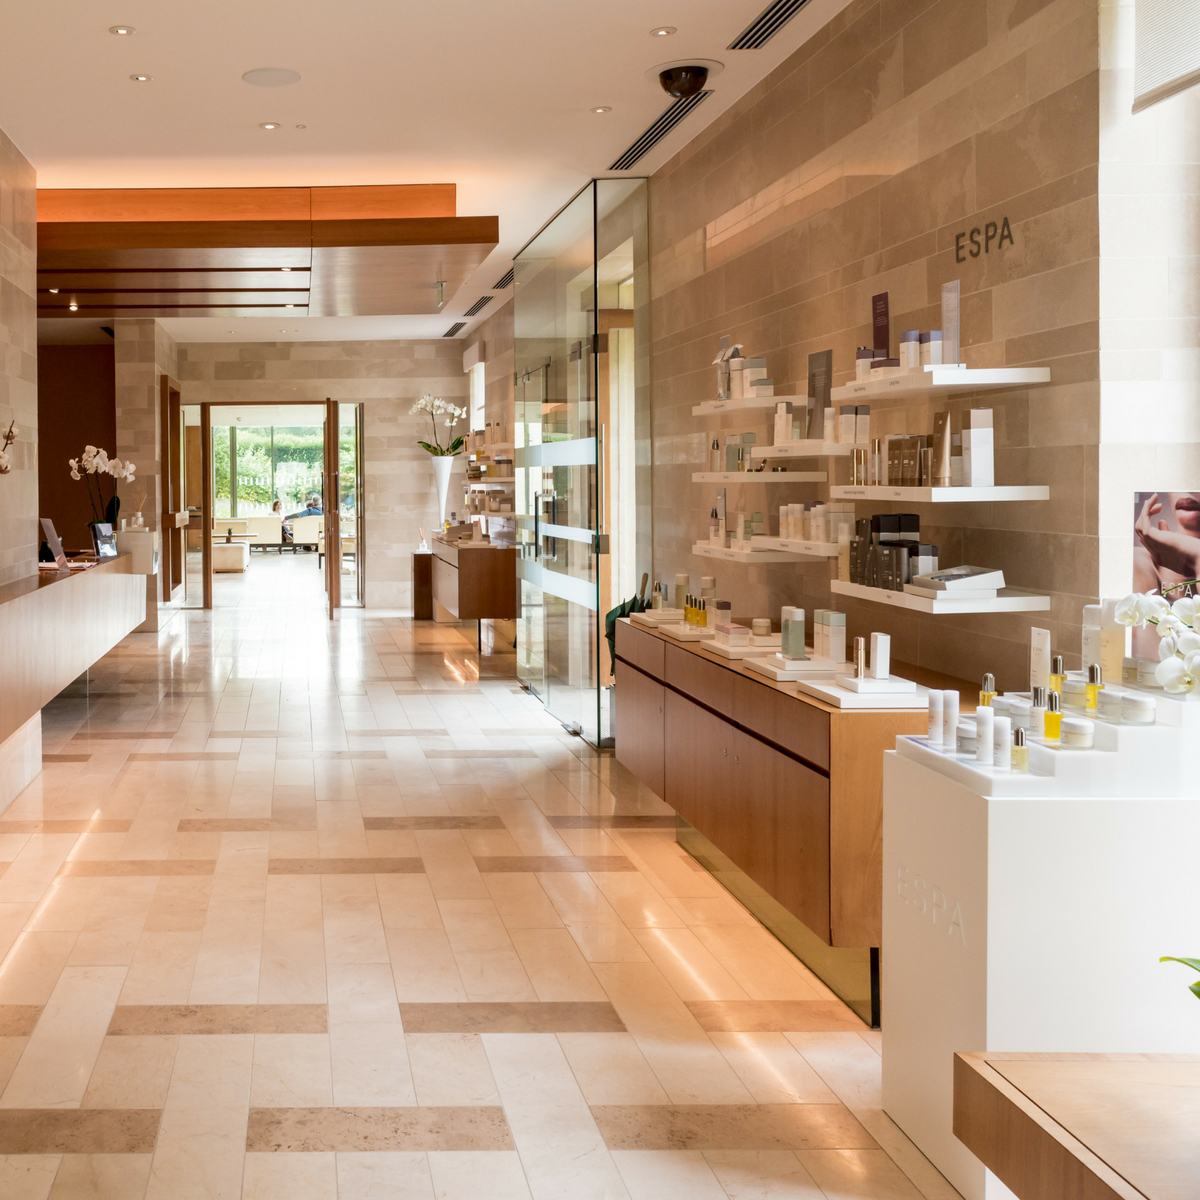 Pristine marble spa corridor with walls covered in products.